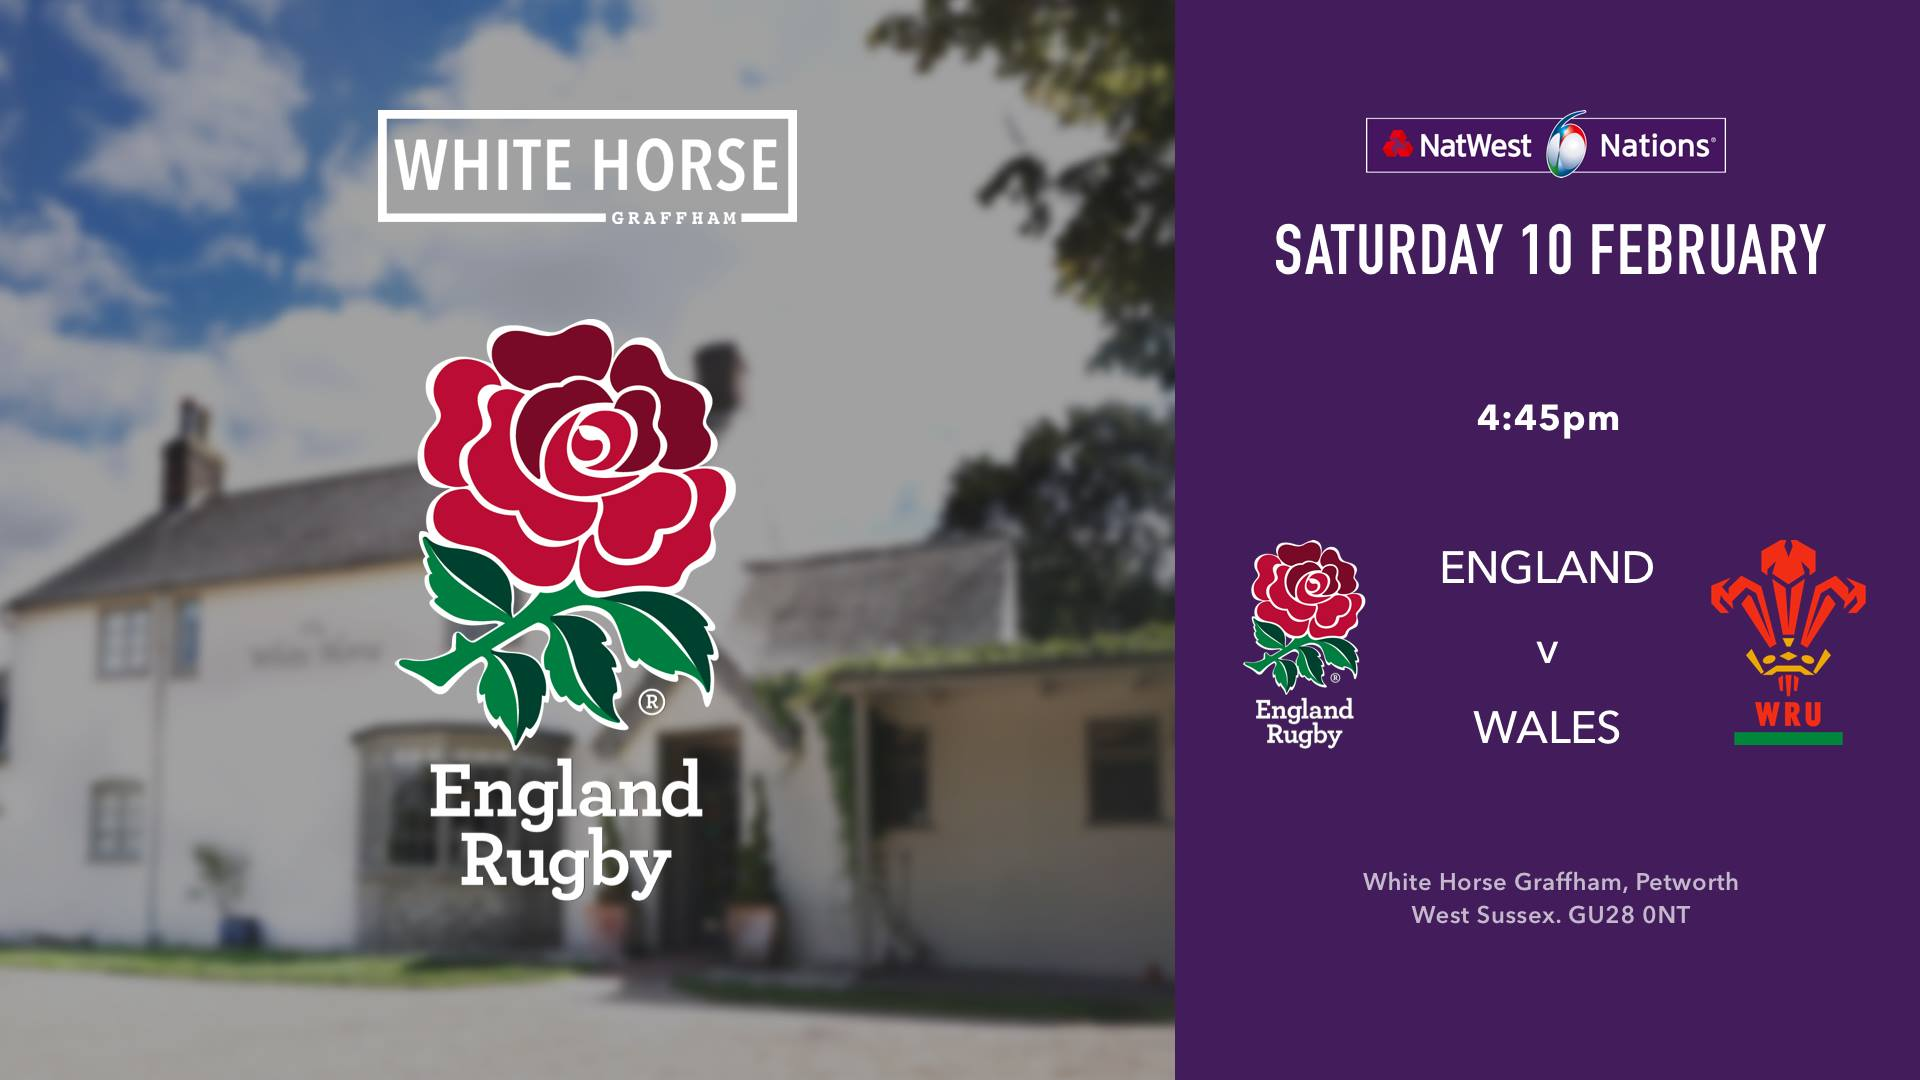 England v Wales: 6 Nations Rugby at the White Horse Graffham